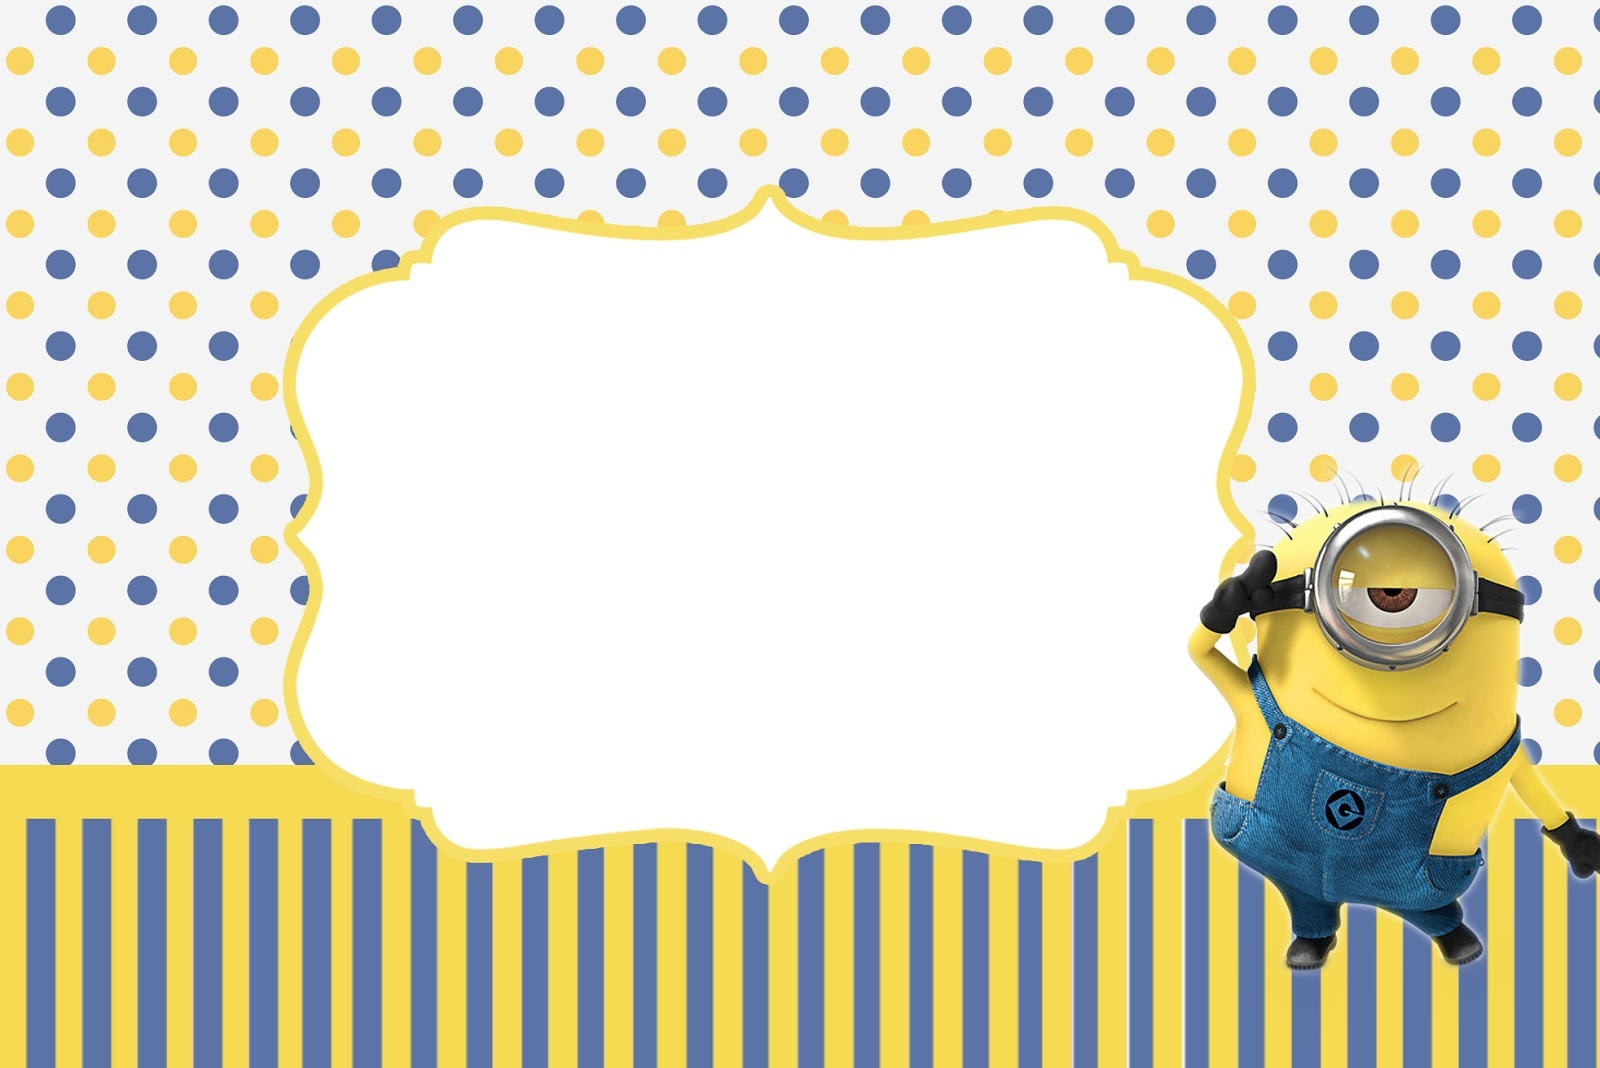 Inspired In Minions Party Invitations, Free Printables. - Oh My - Party Invitation Maker Online Free Printable